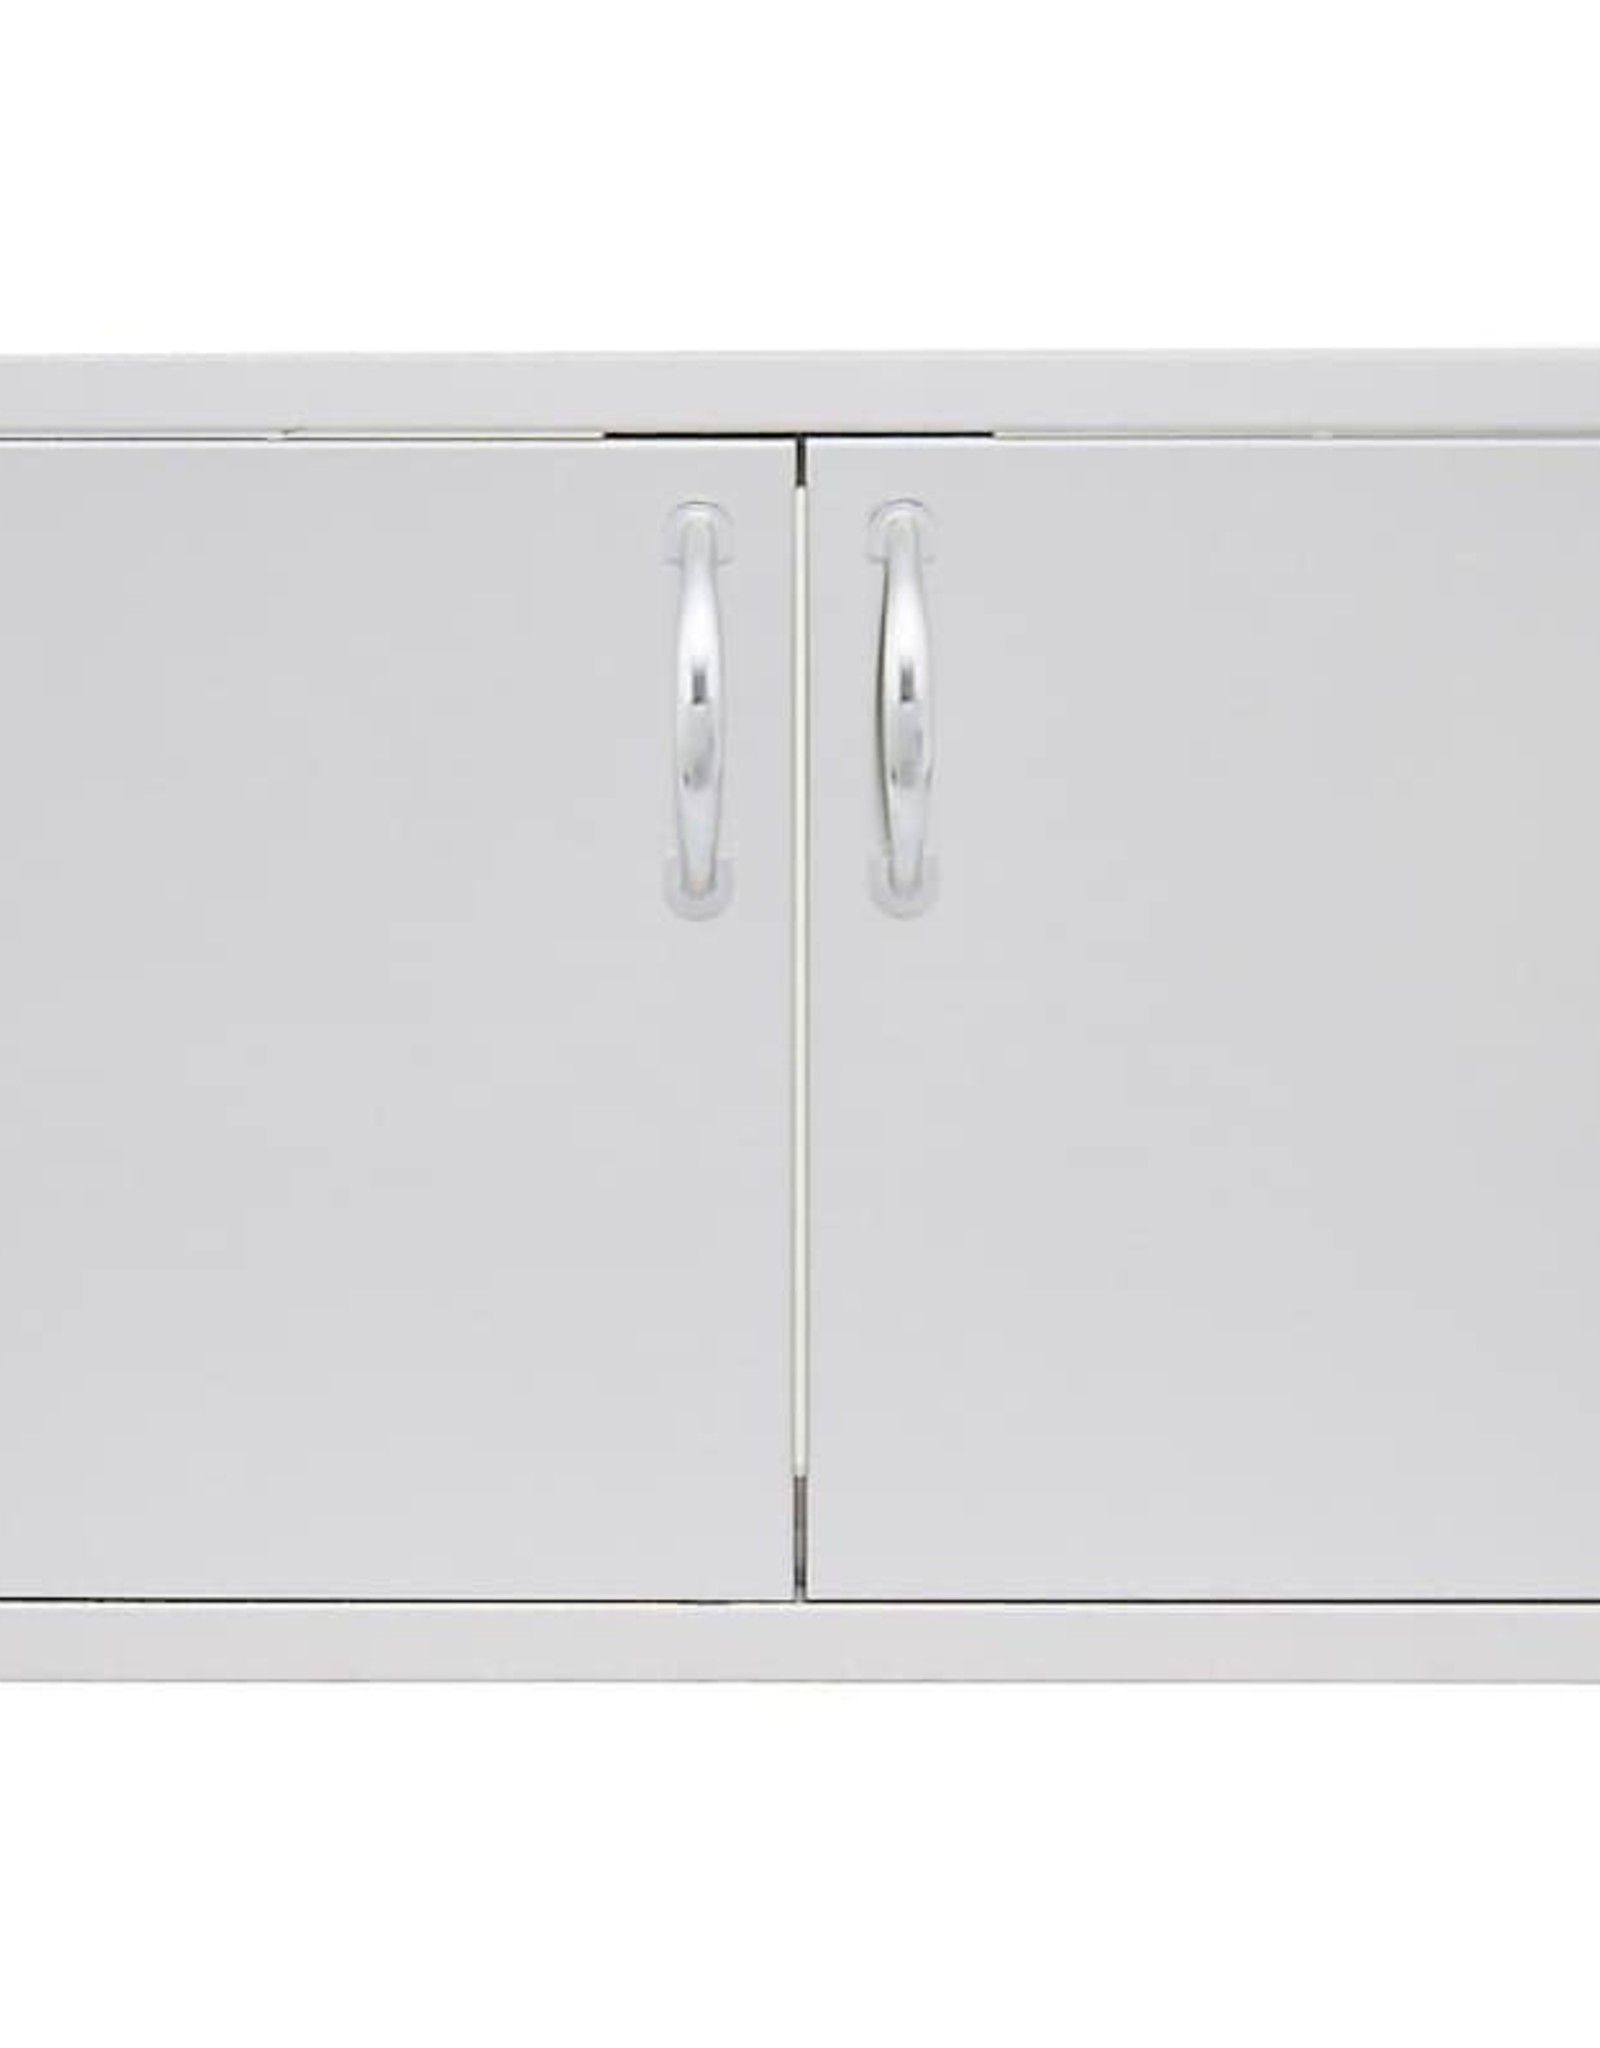 Blaze Outdoor Products Blaze 40-Inch Stainless Steel Double Access Door With Paper Towel Holder - BLZ-AD40-R